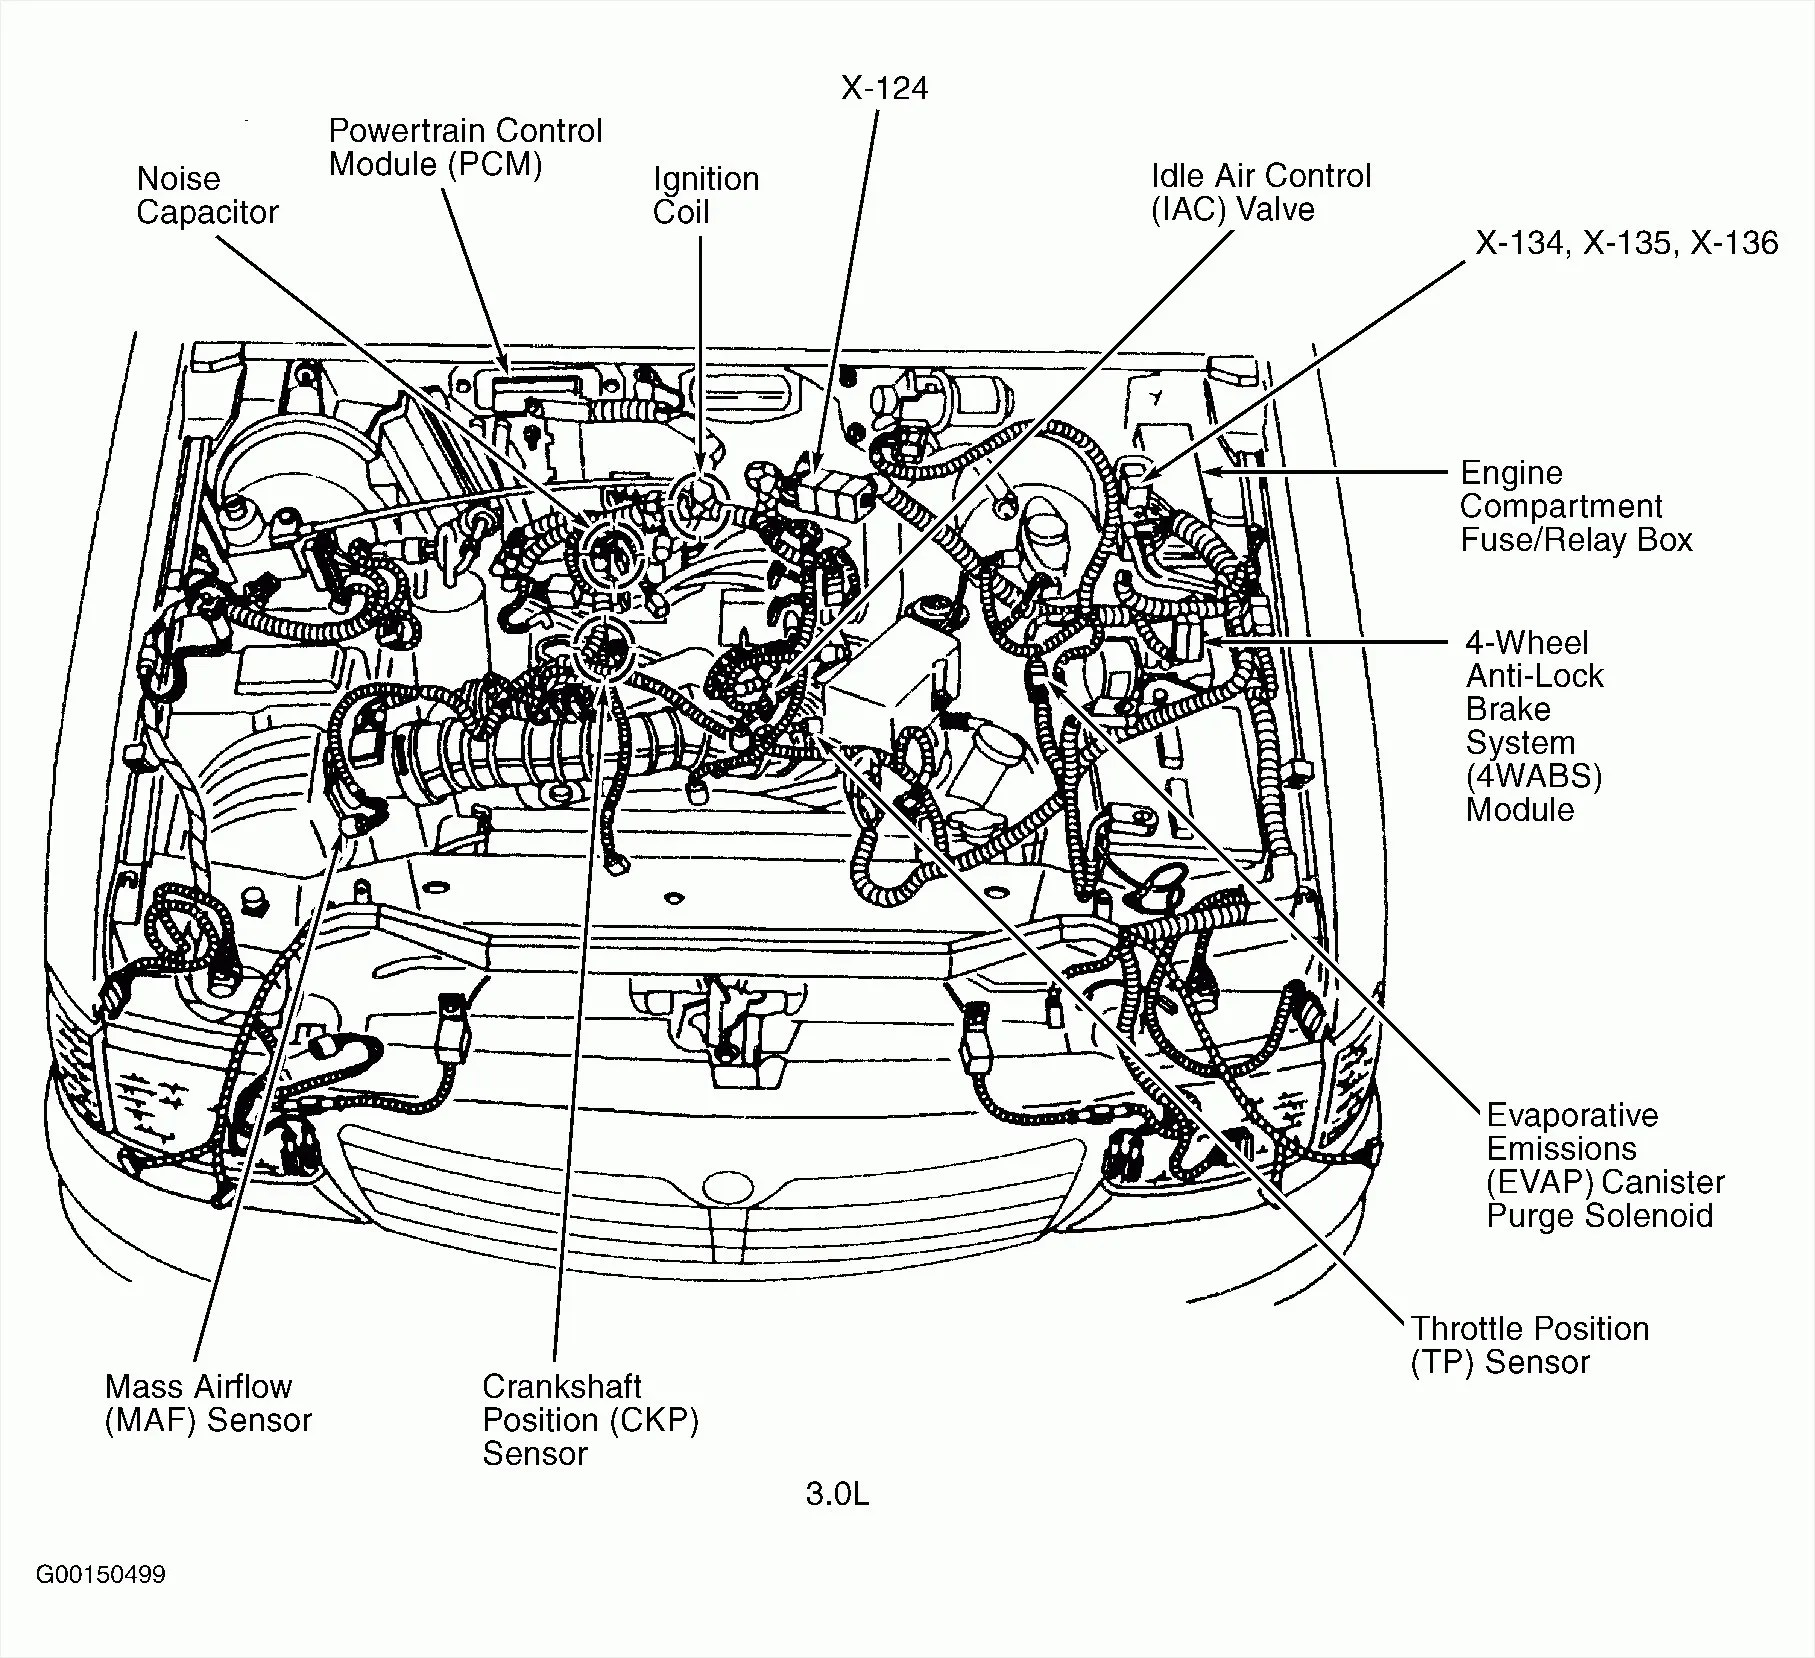 hight resolution of dodge grand caravan engine diagram wiring diagram toolbox dodge grand caravan engine schematic 1997 dodge grand